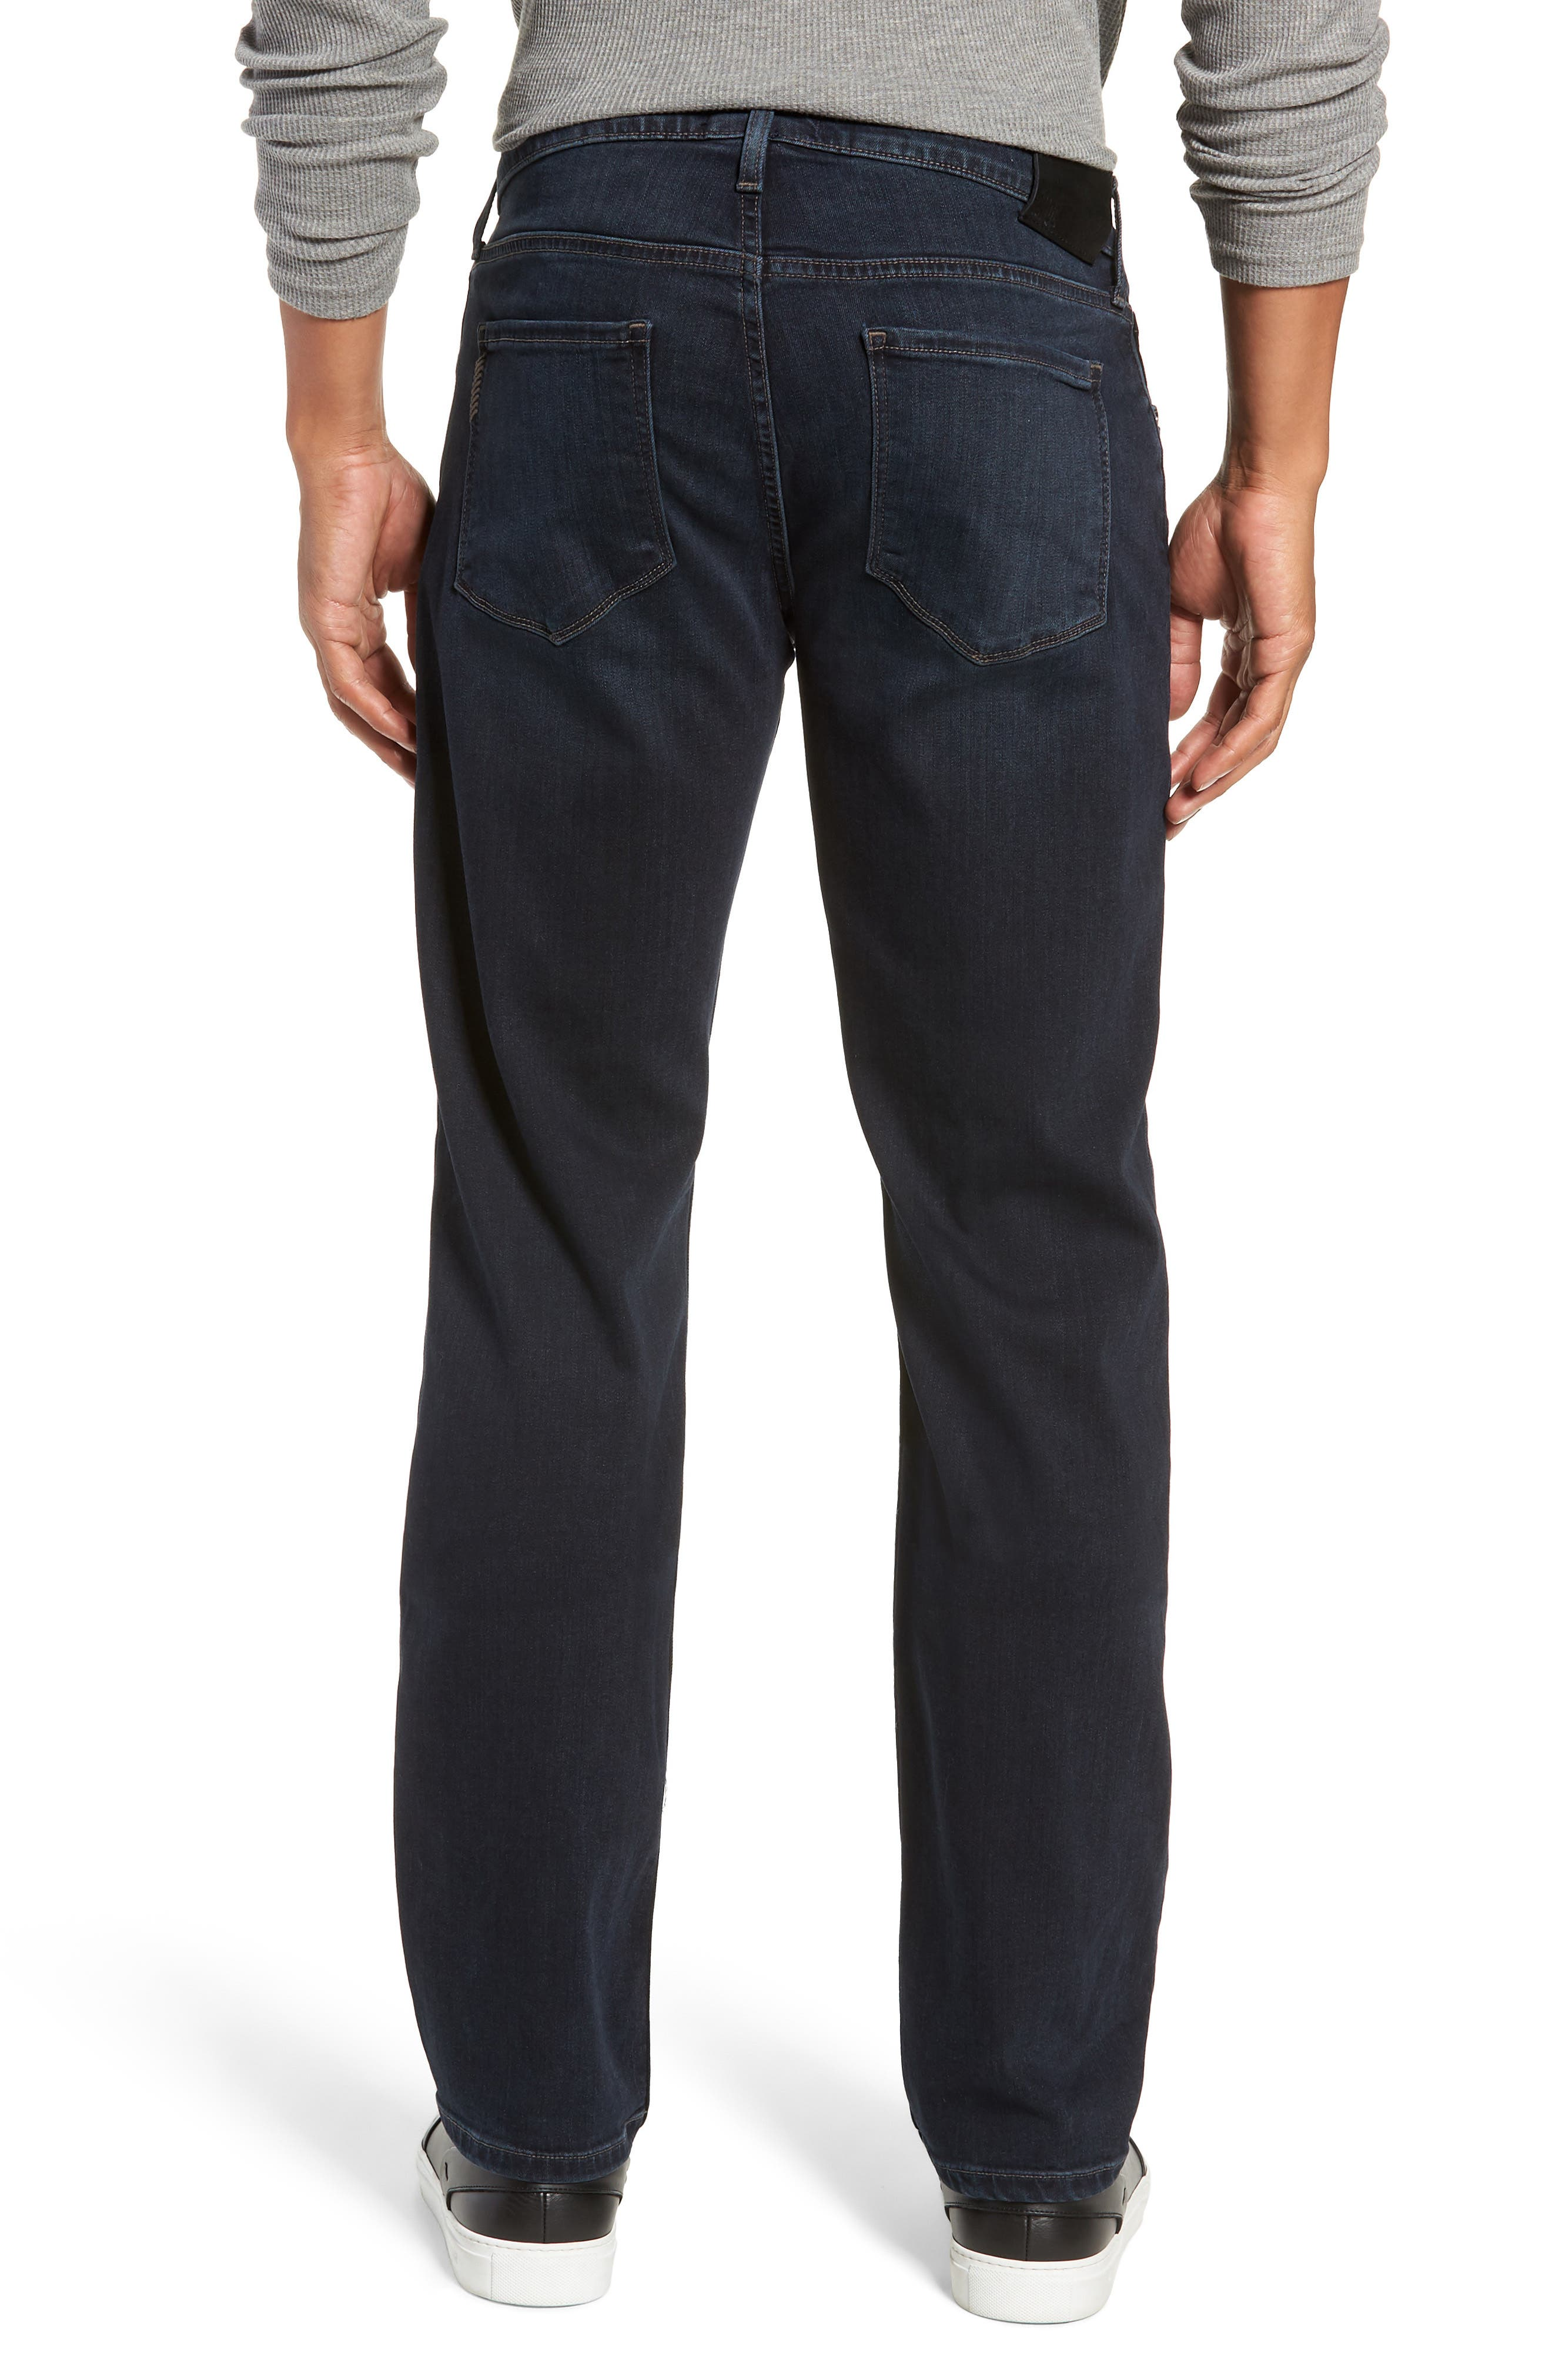 Transcend - Normandie Straight Leg Jeans,                             Alternate thumbnail 2, color,                             LARK